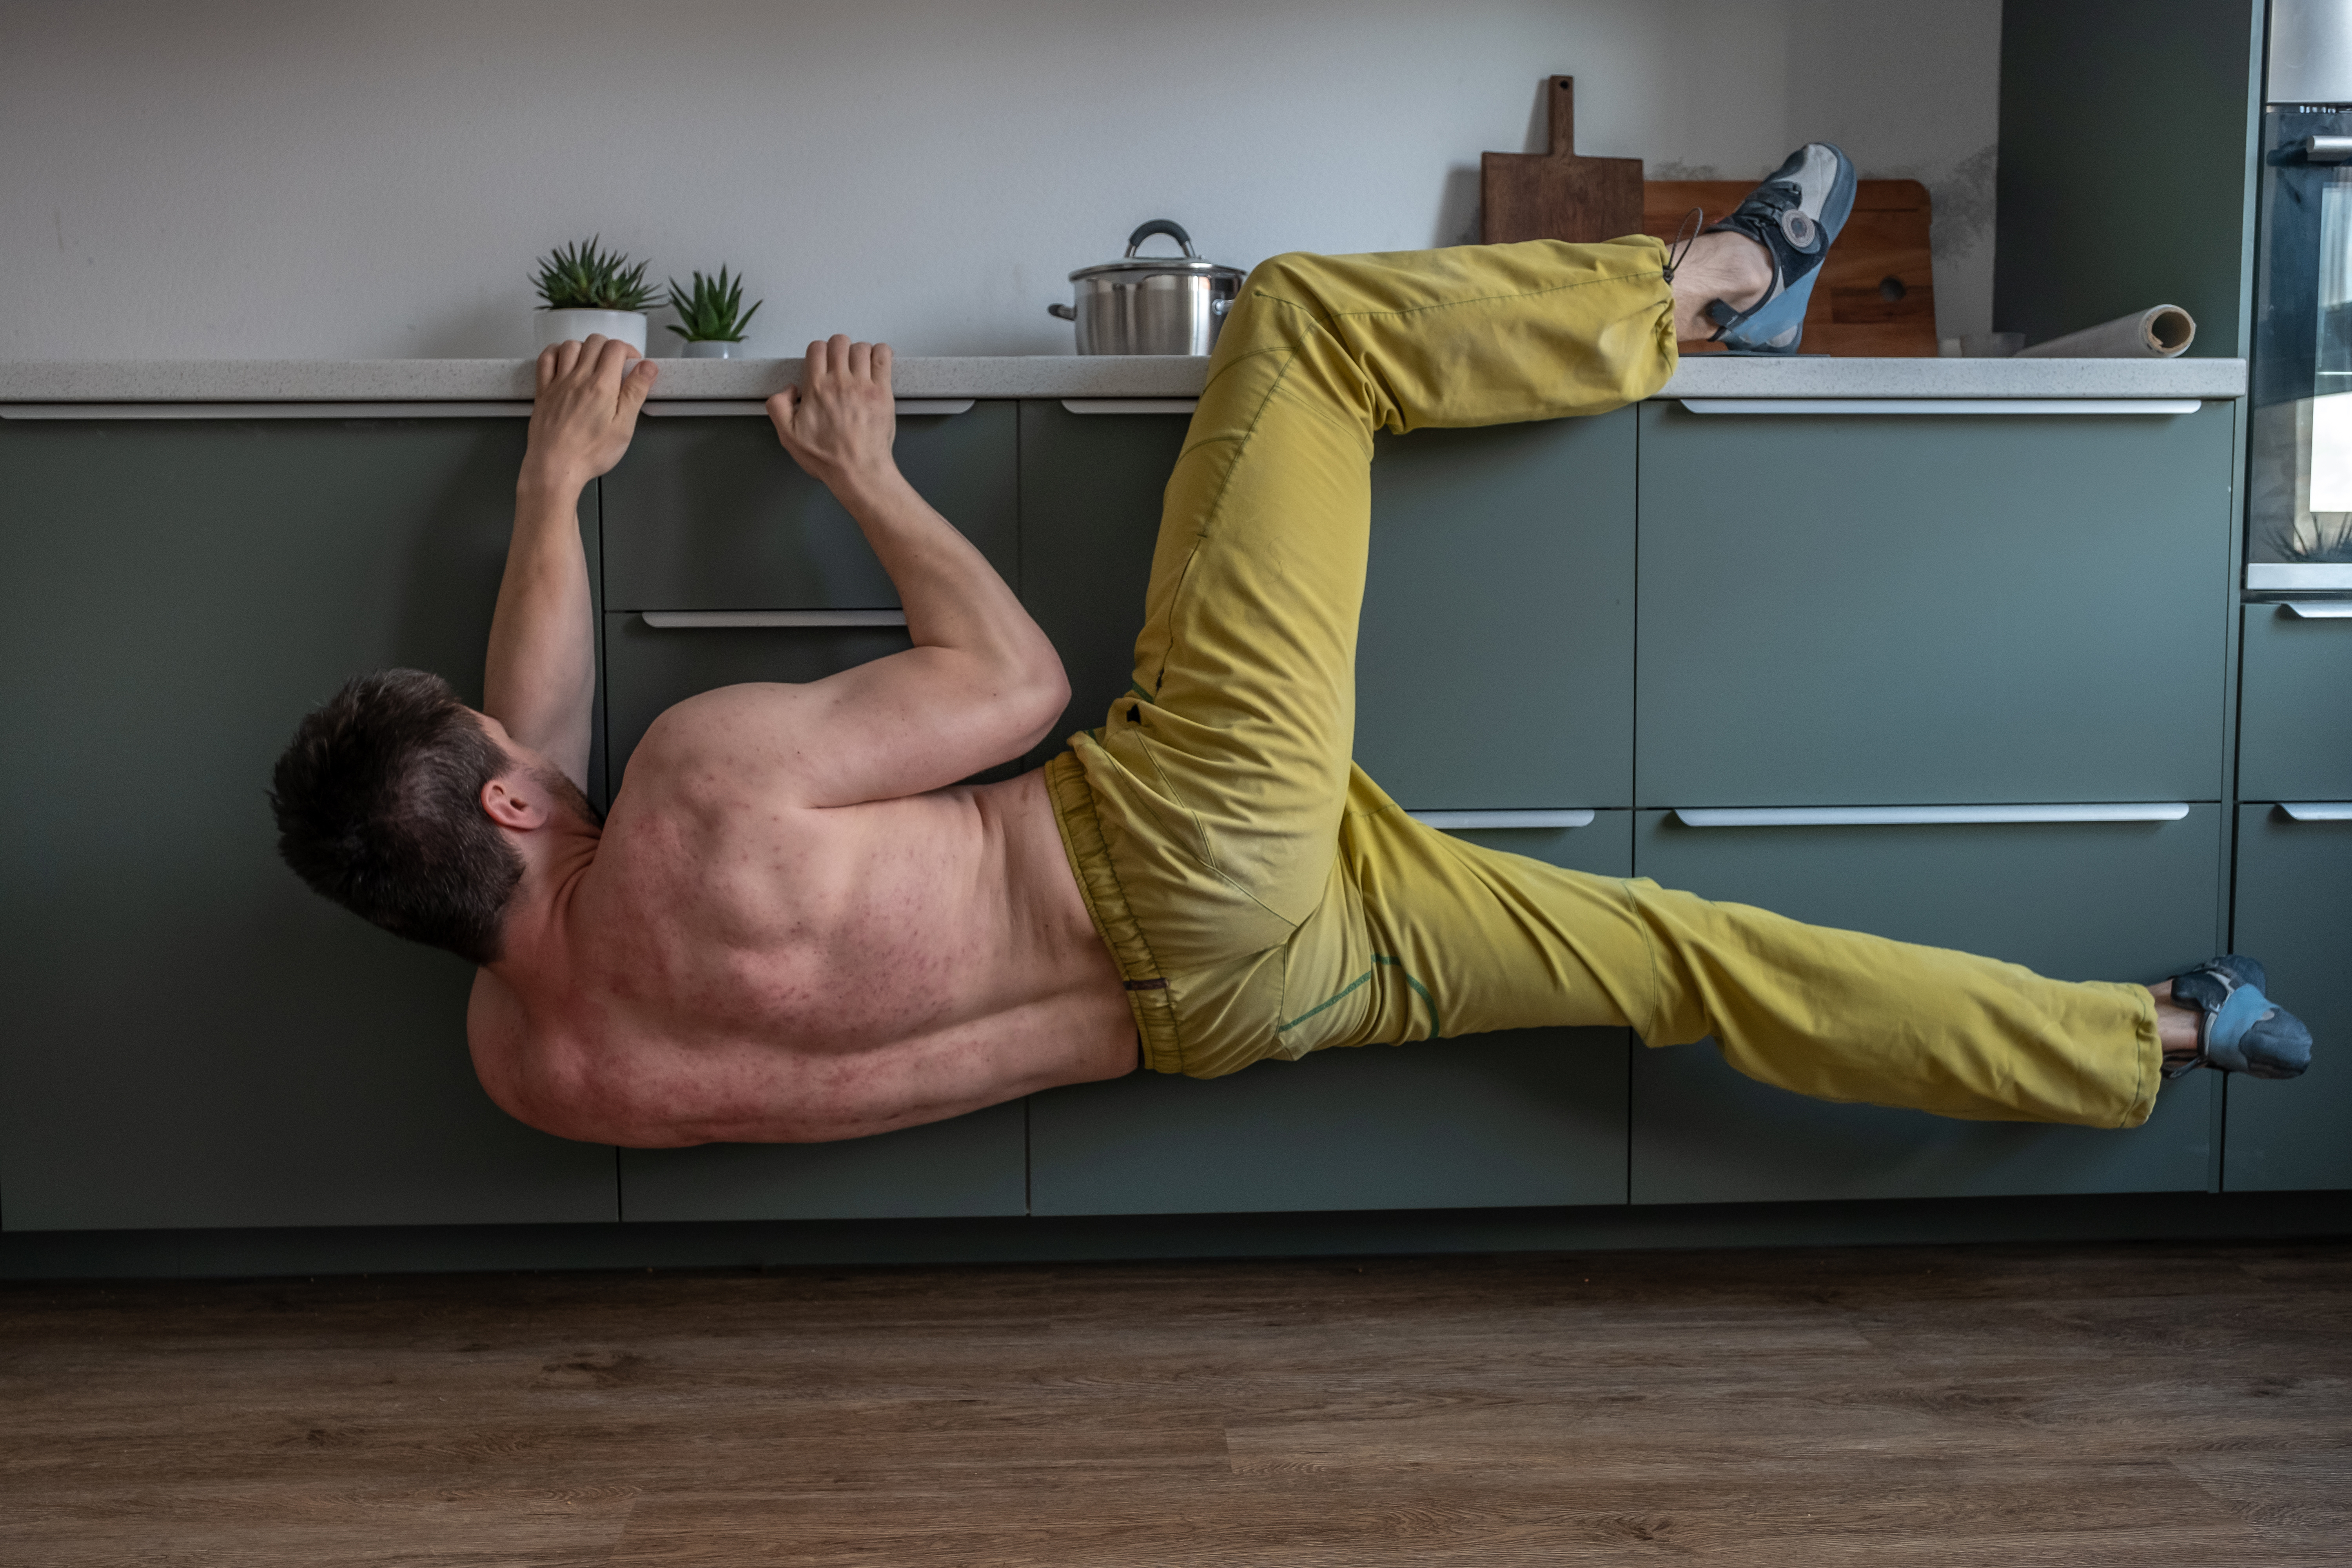 golf-workout-at-home-using-furniture-and-counters